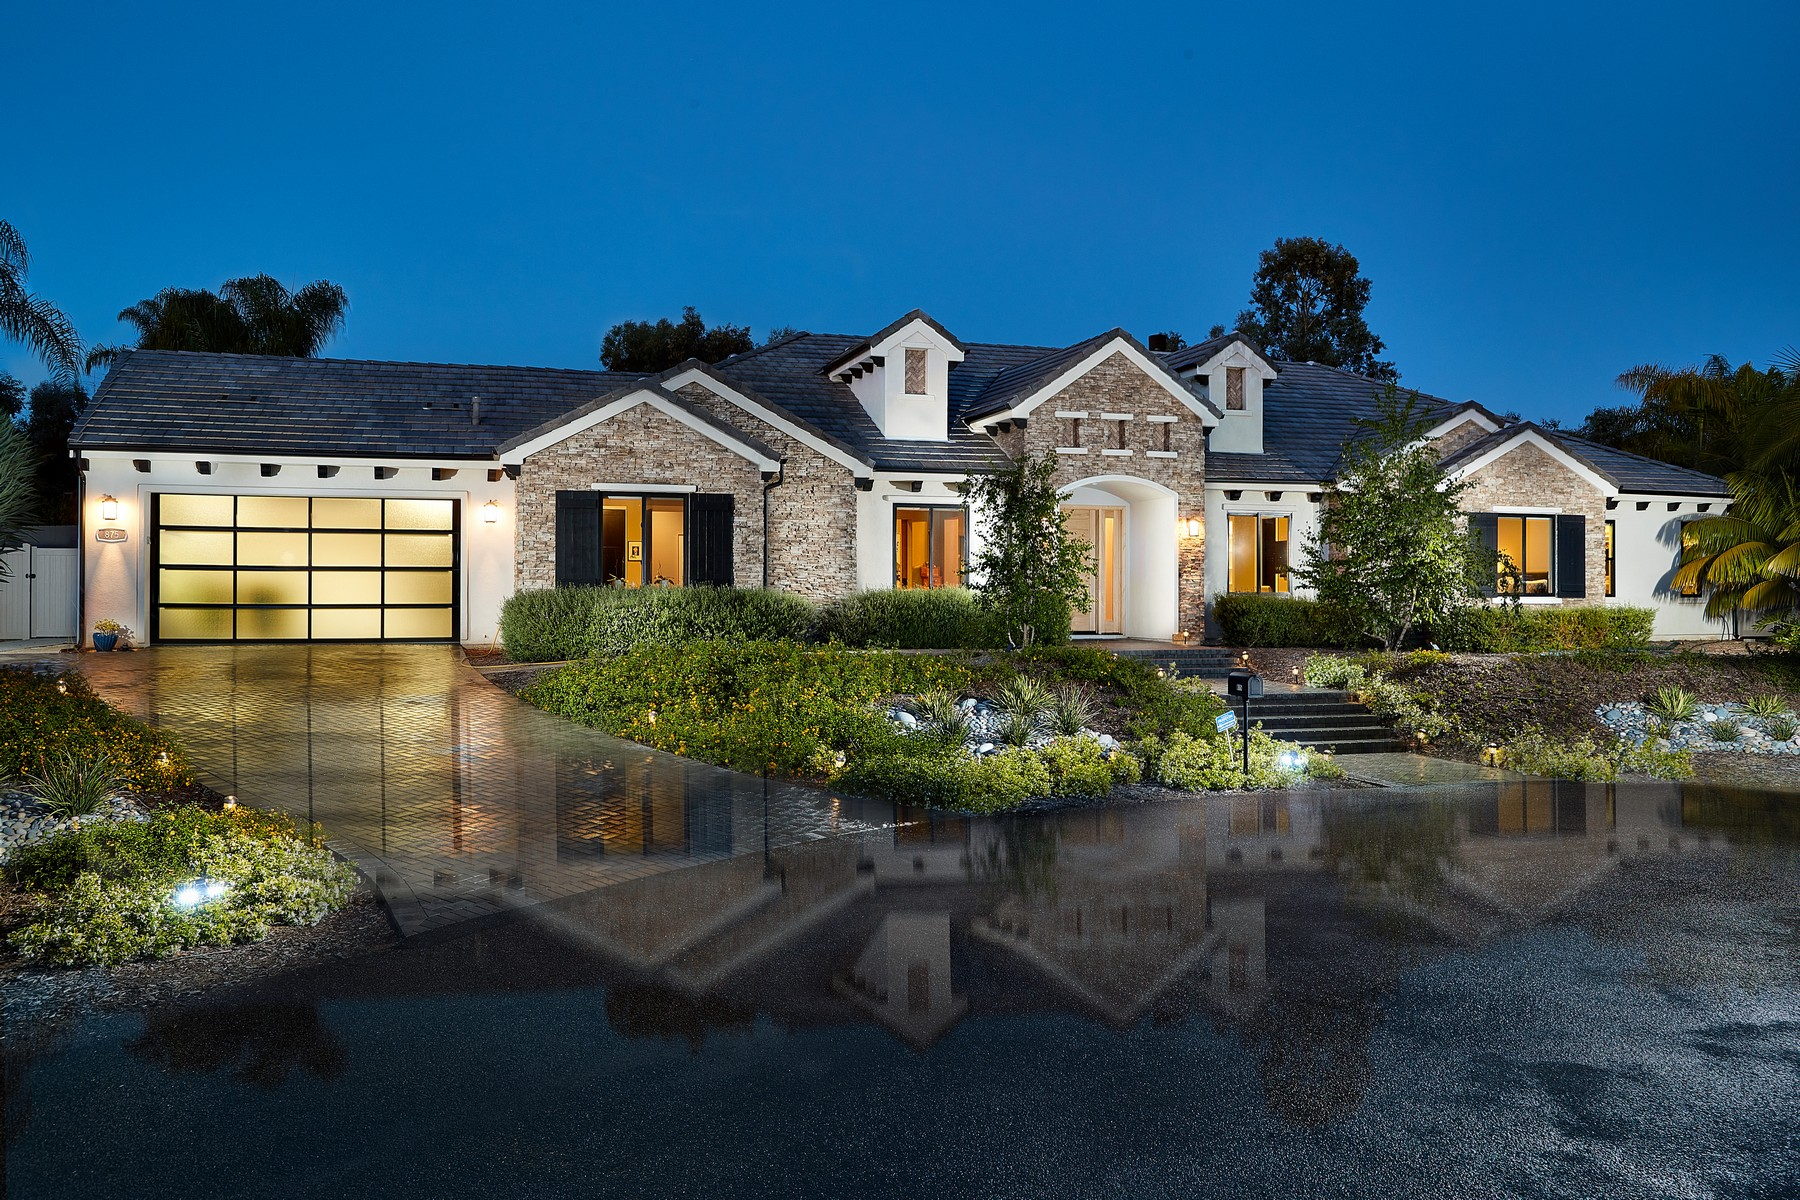 Single Family Homes for Active at Brittany Estate 875 Brittany Road Encinitas, California 92024 United States